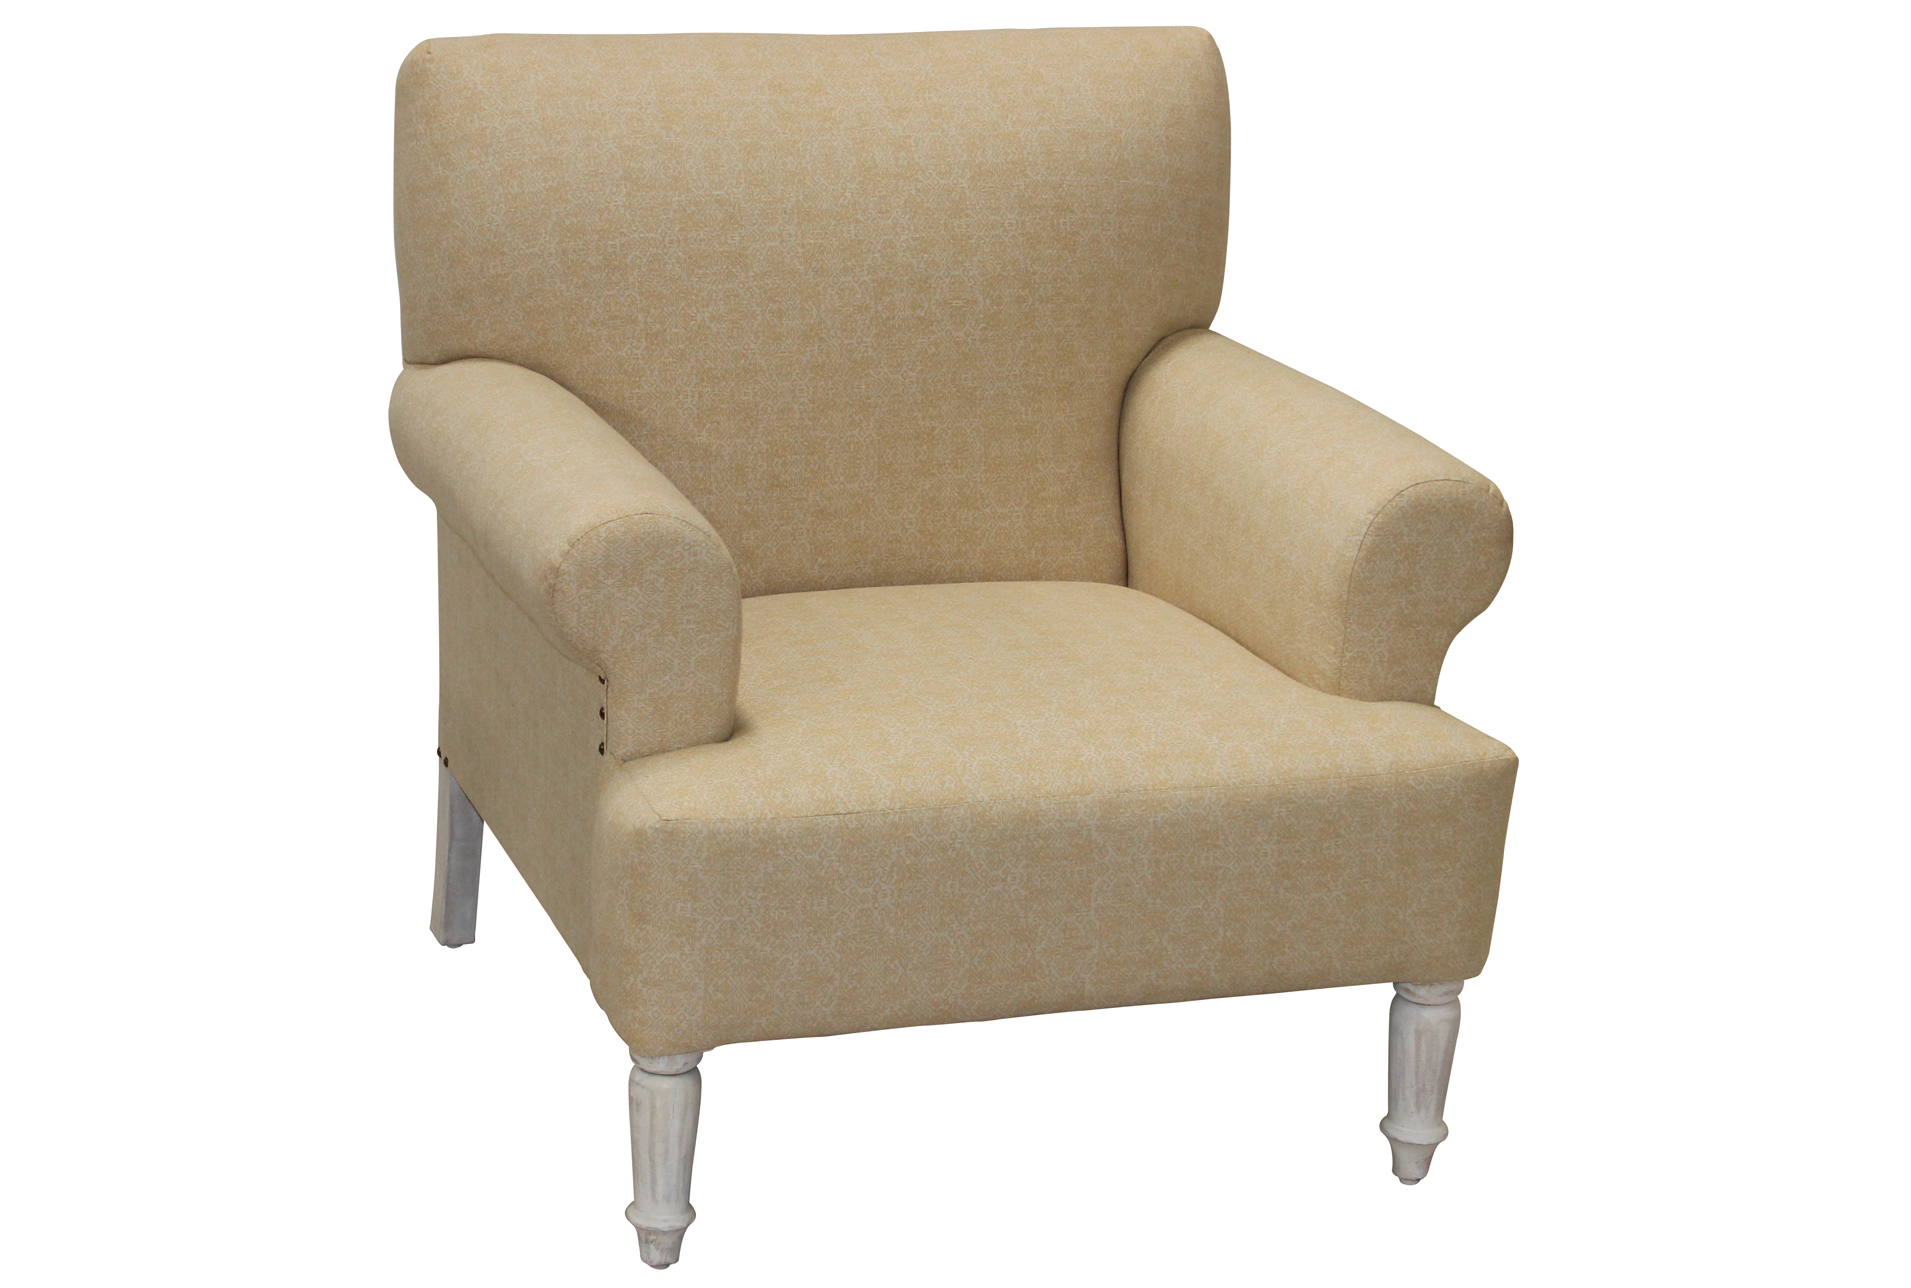 White U0026 Beige Patterned Accent Chair